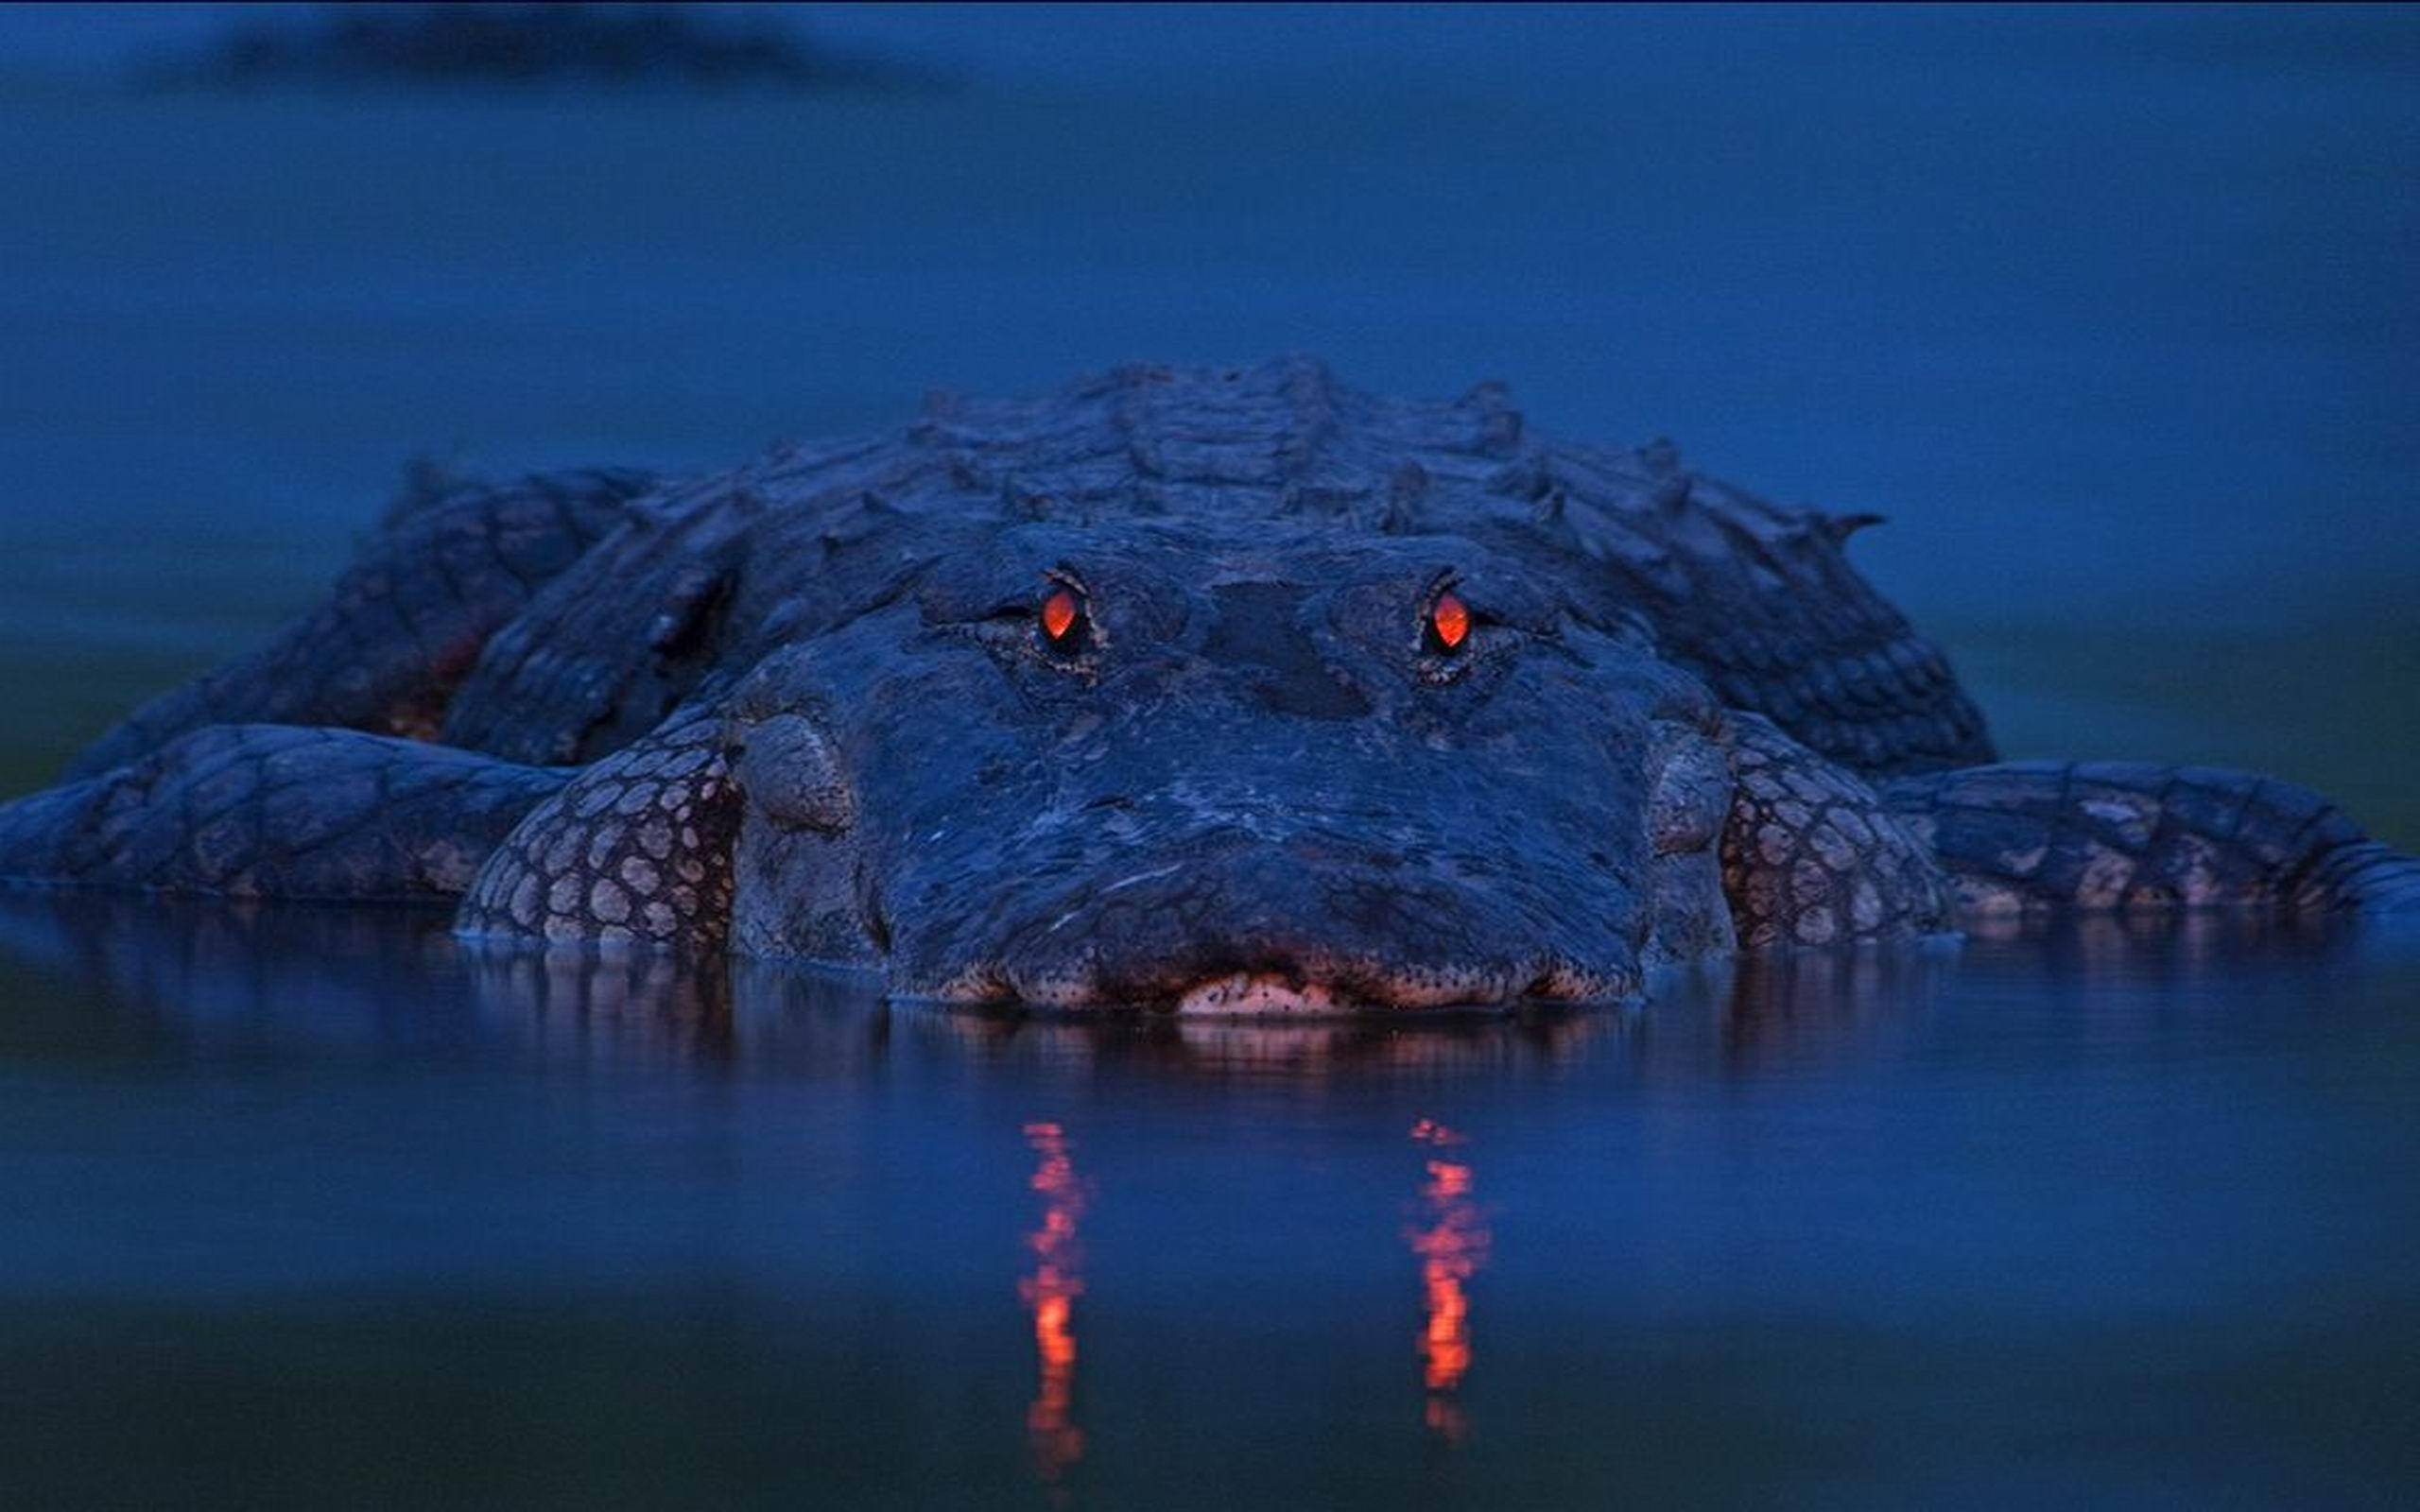 Alligator Wallpapers 21671 2560x1600 px